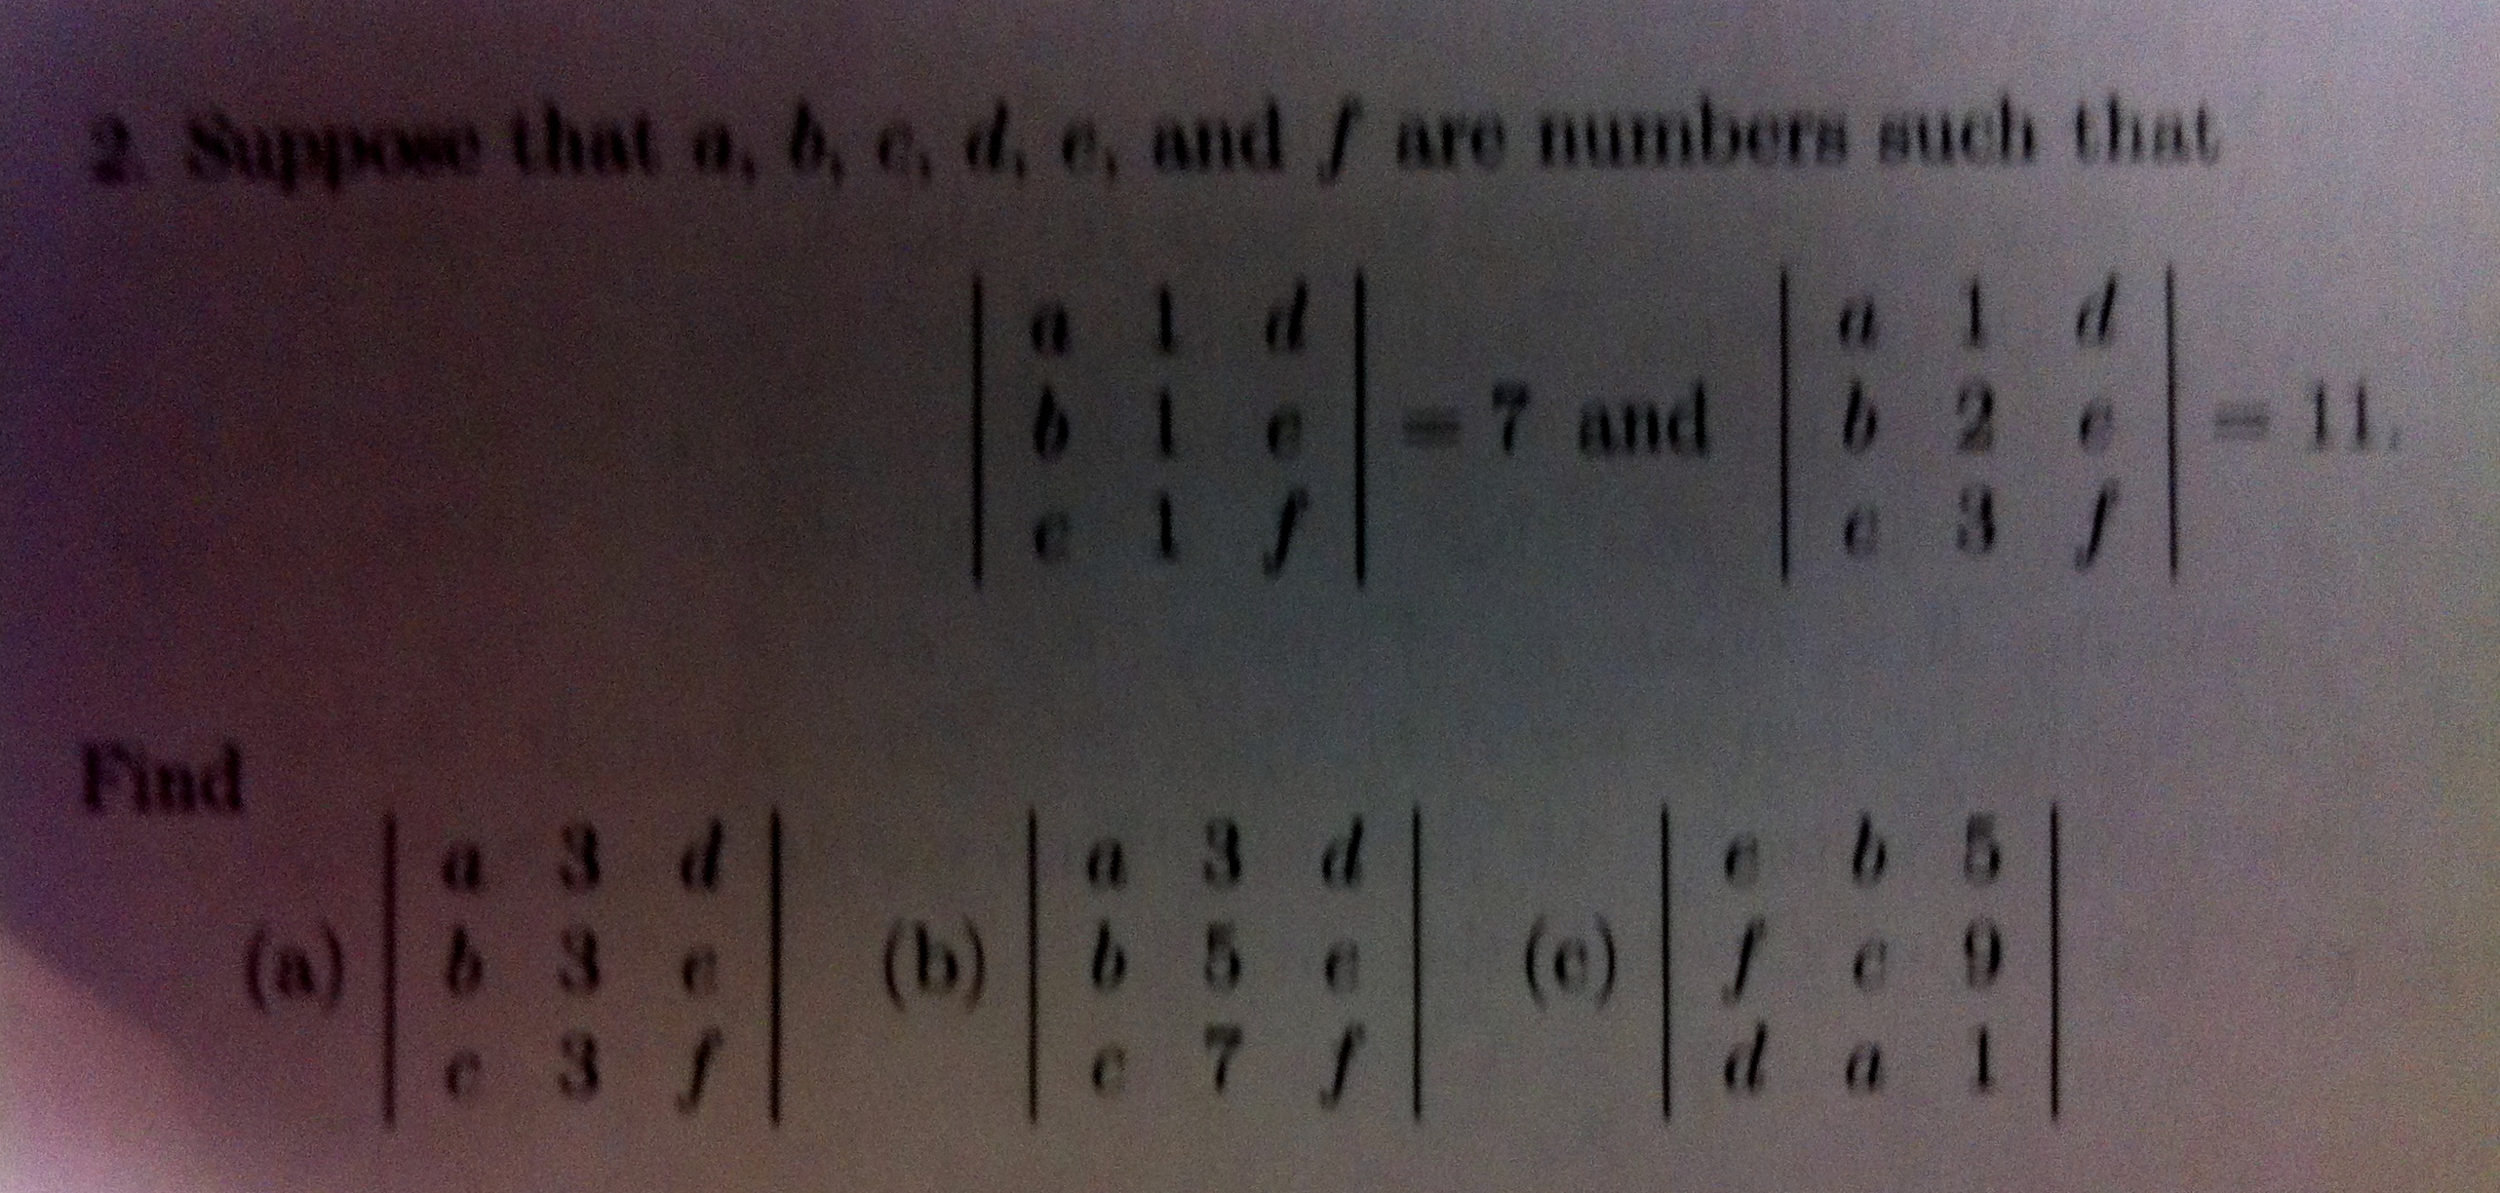 Suppose that a, b, c, d, e, and f are numbers such